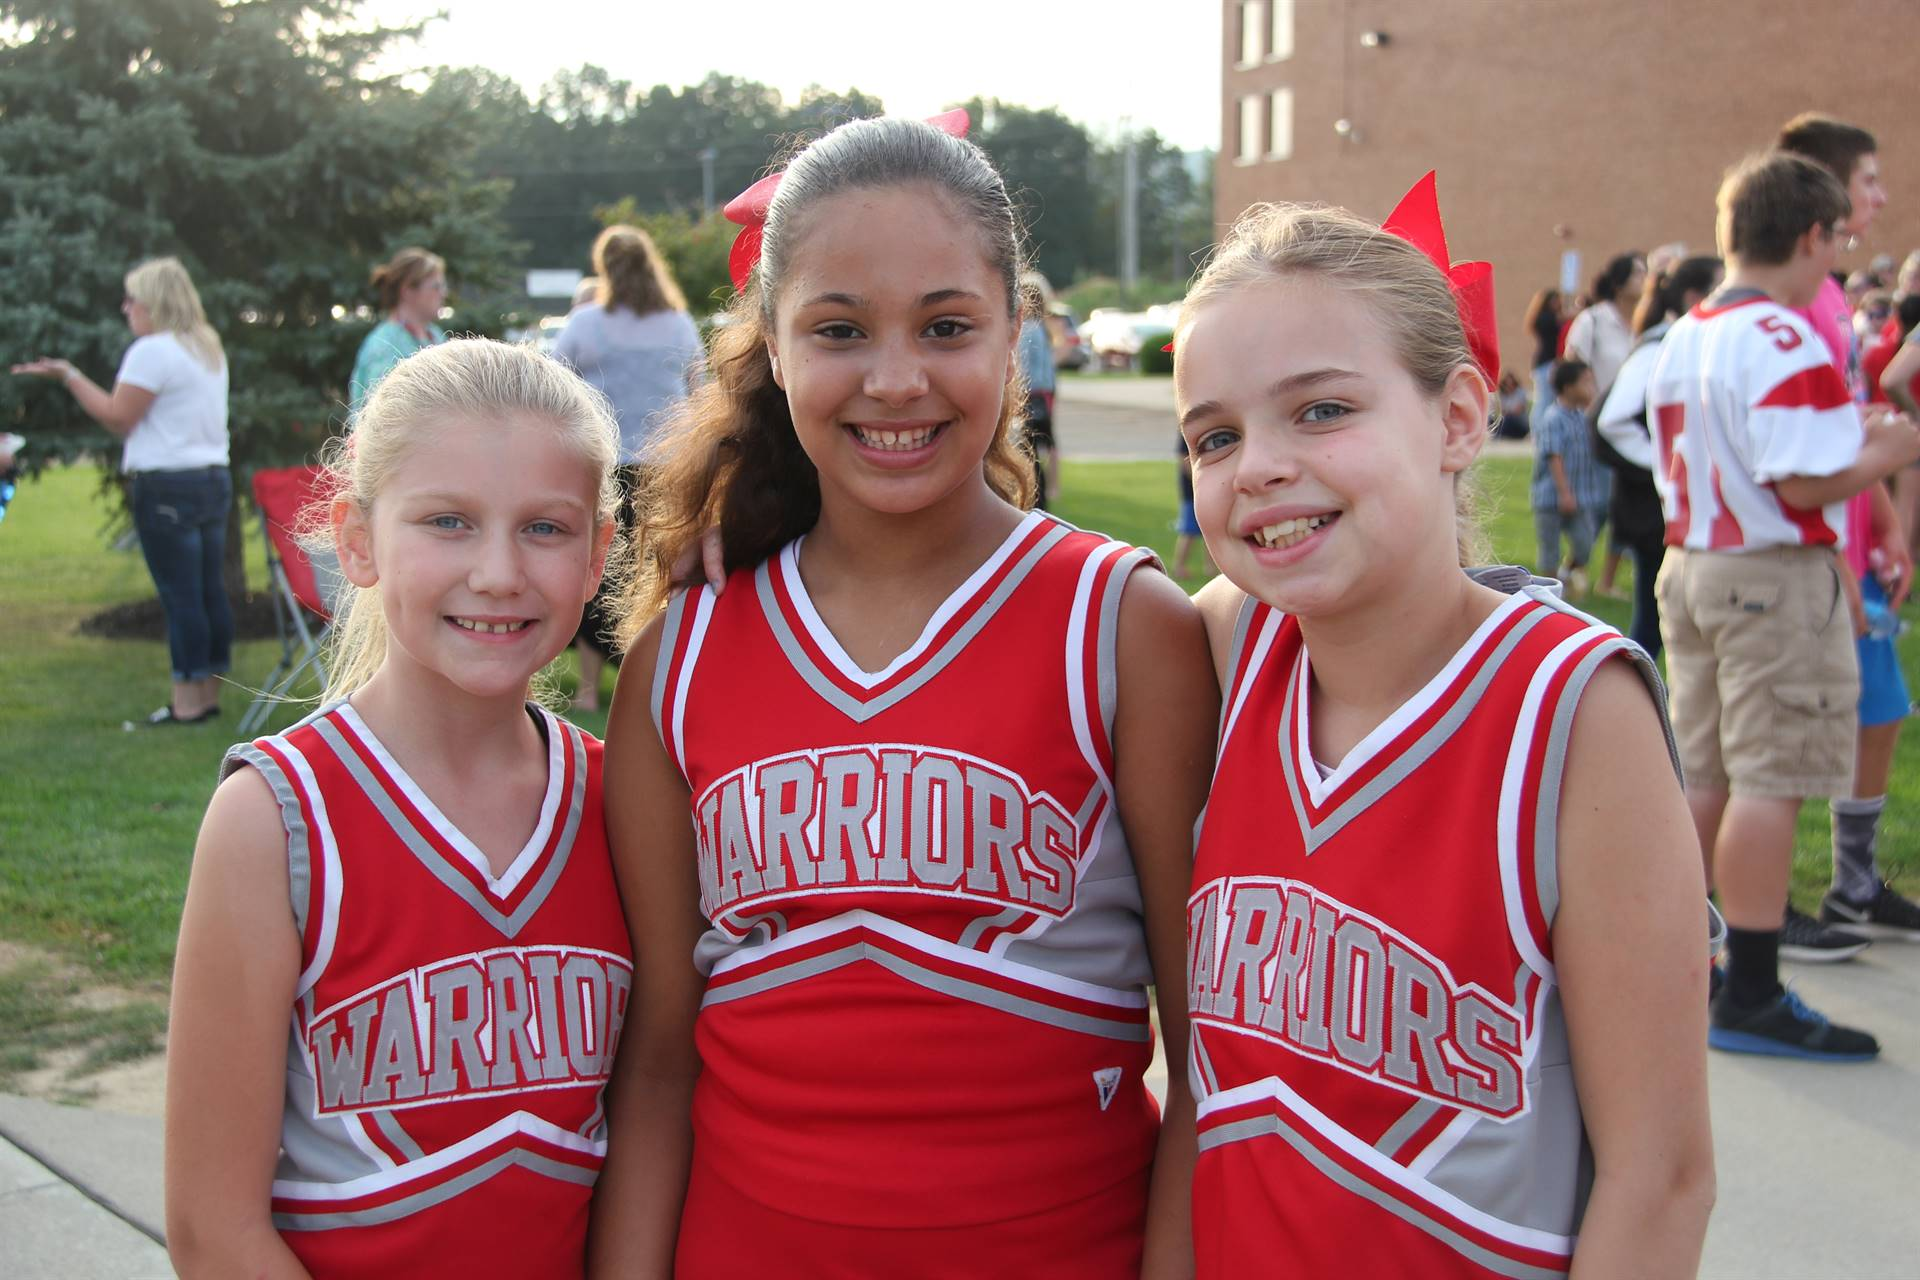 three warrior cheerleaders smile